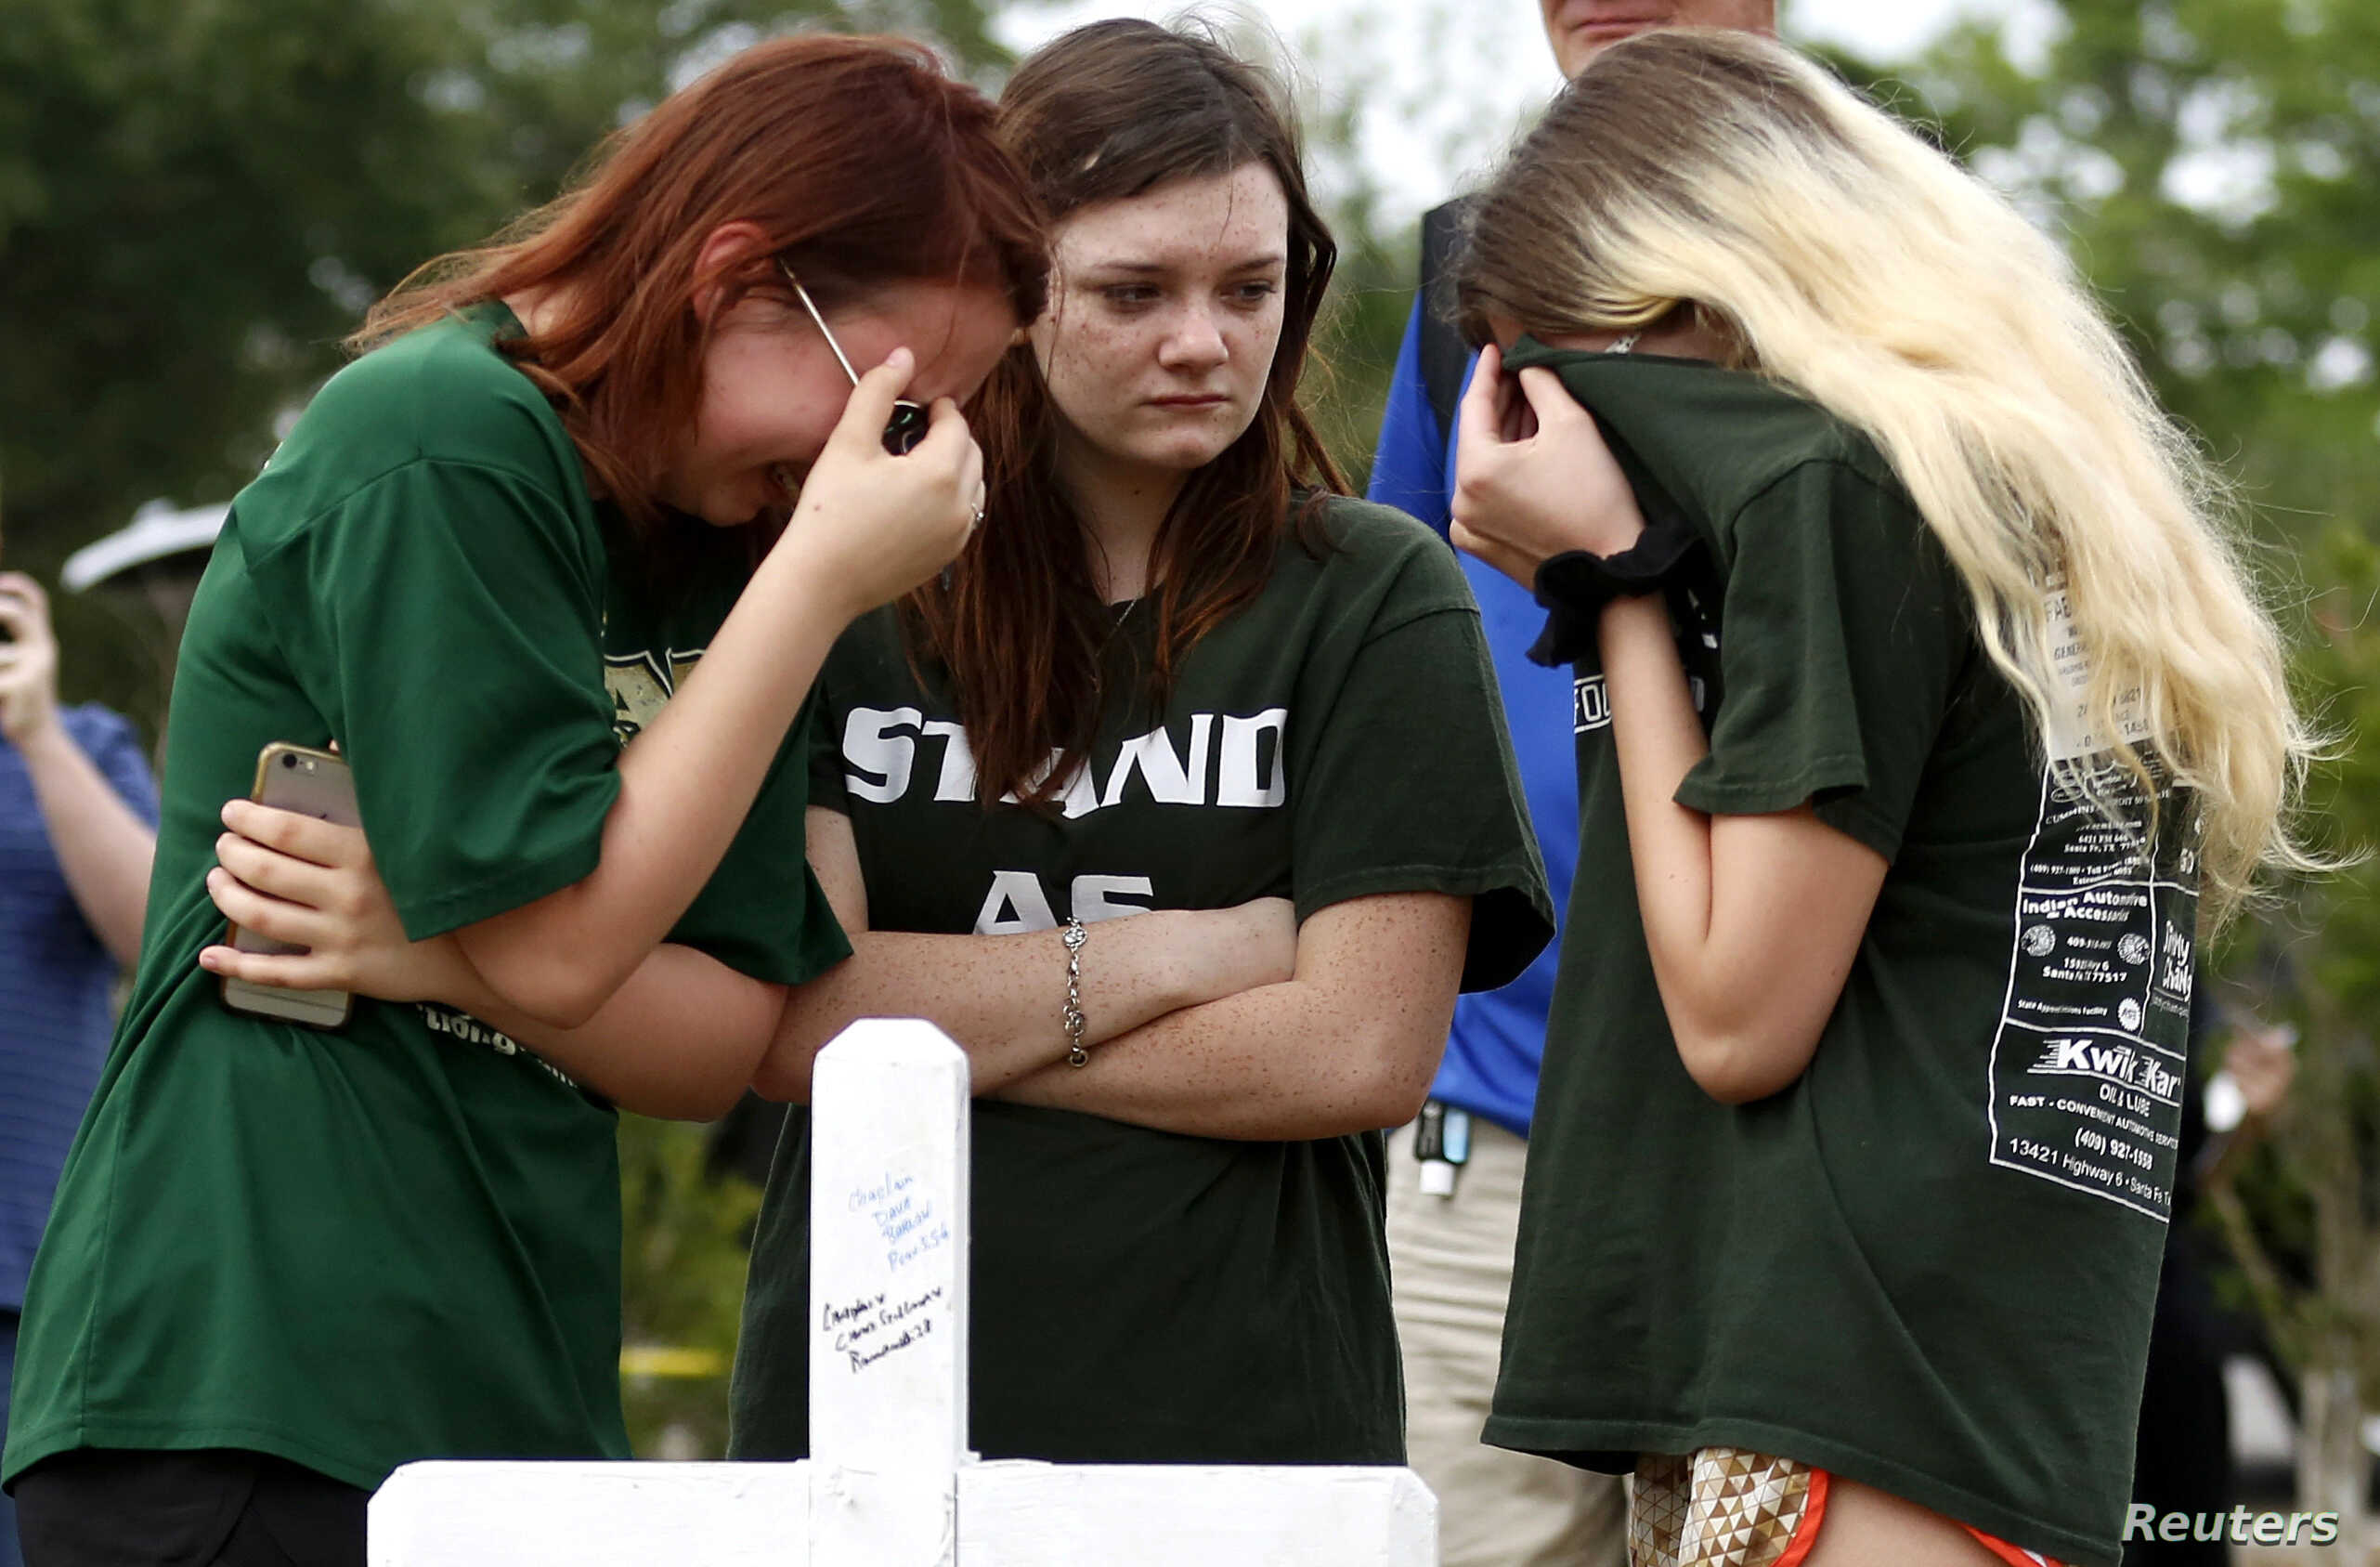 FBI Study: Most Mass Shooters Are Not Mentally Ill | Voice